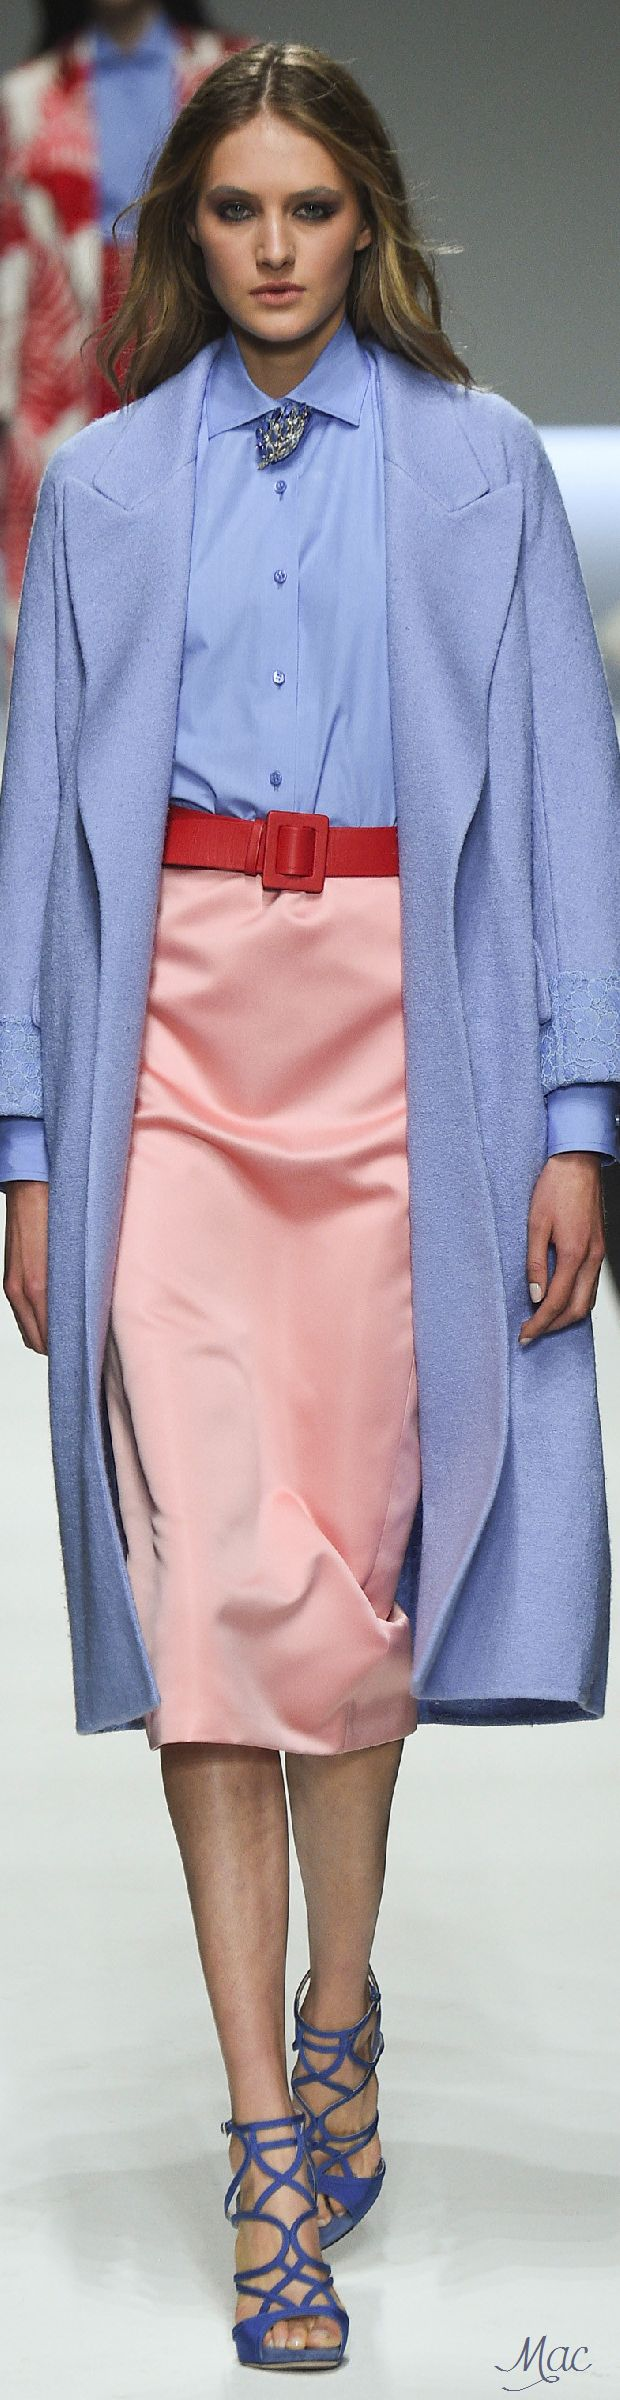 Spring 2016 Ready-to-Wear Ermanno Scervino women fashion outfit clothing style apparel @roressclothes closet ideas